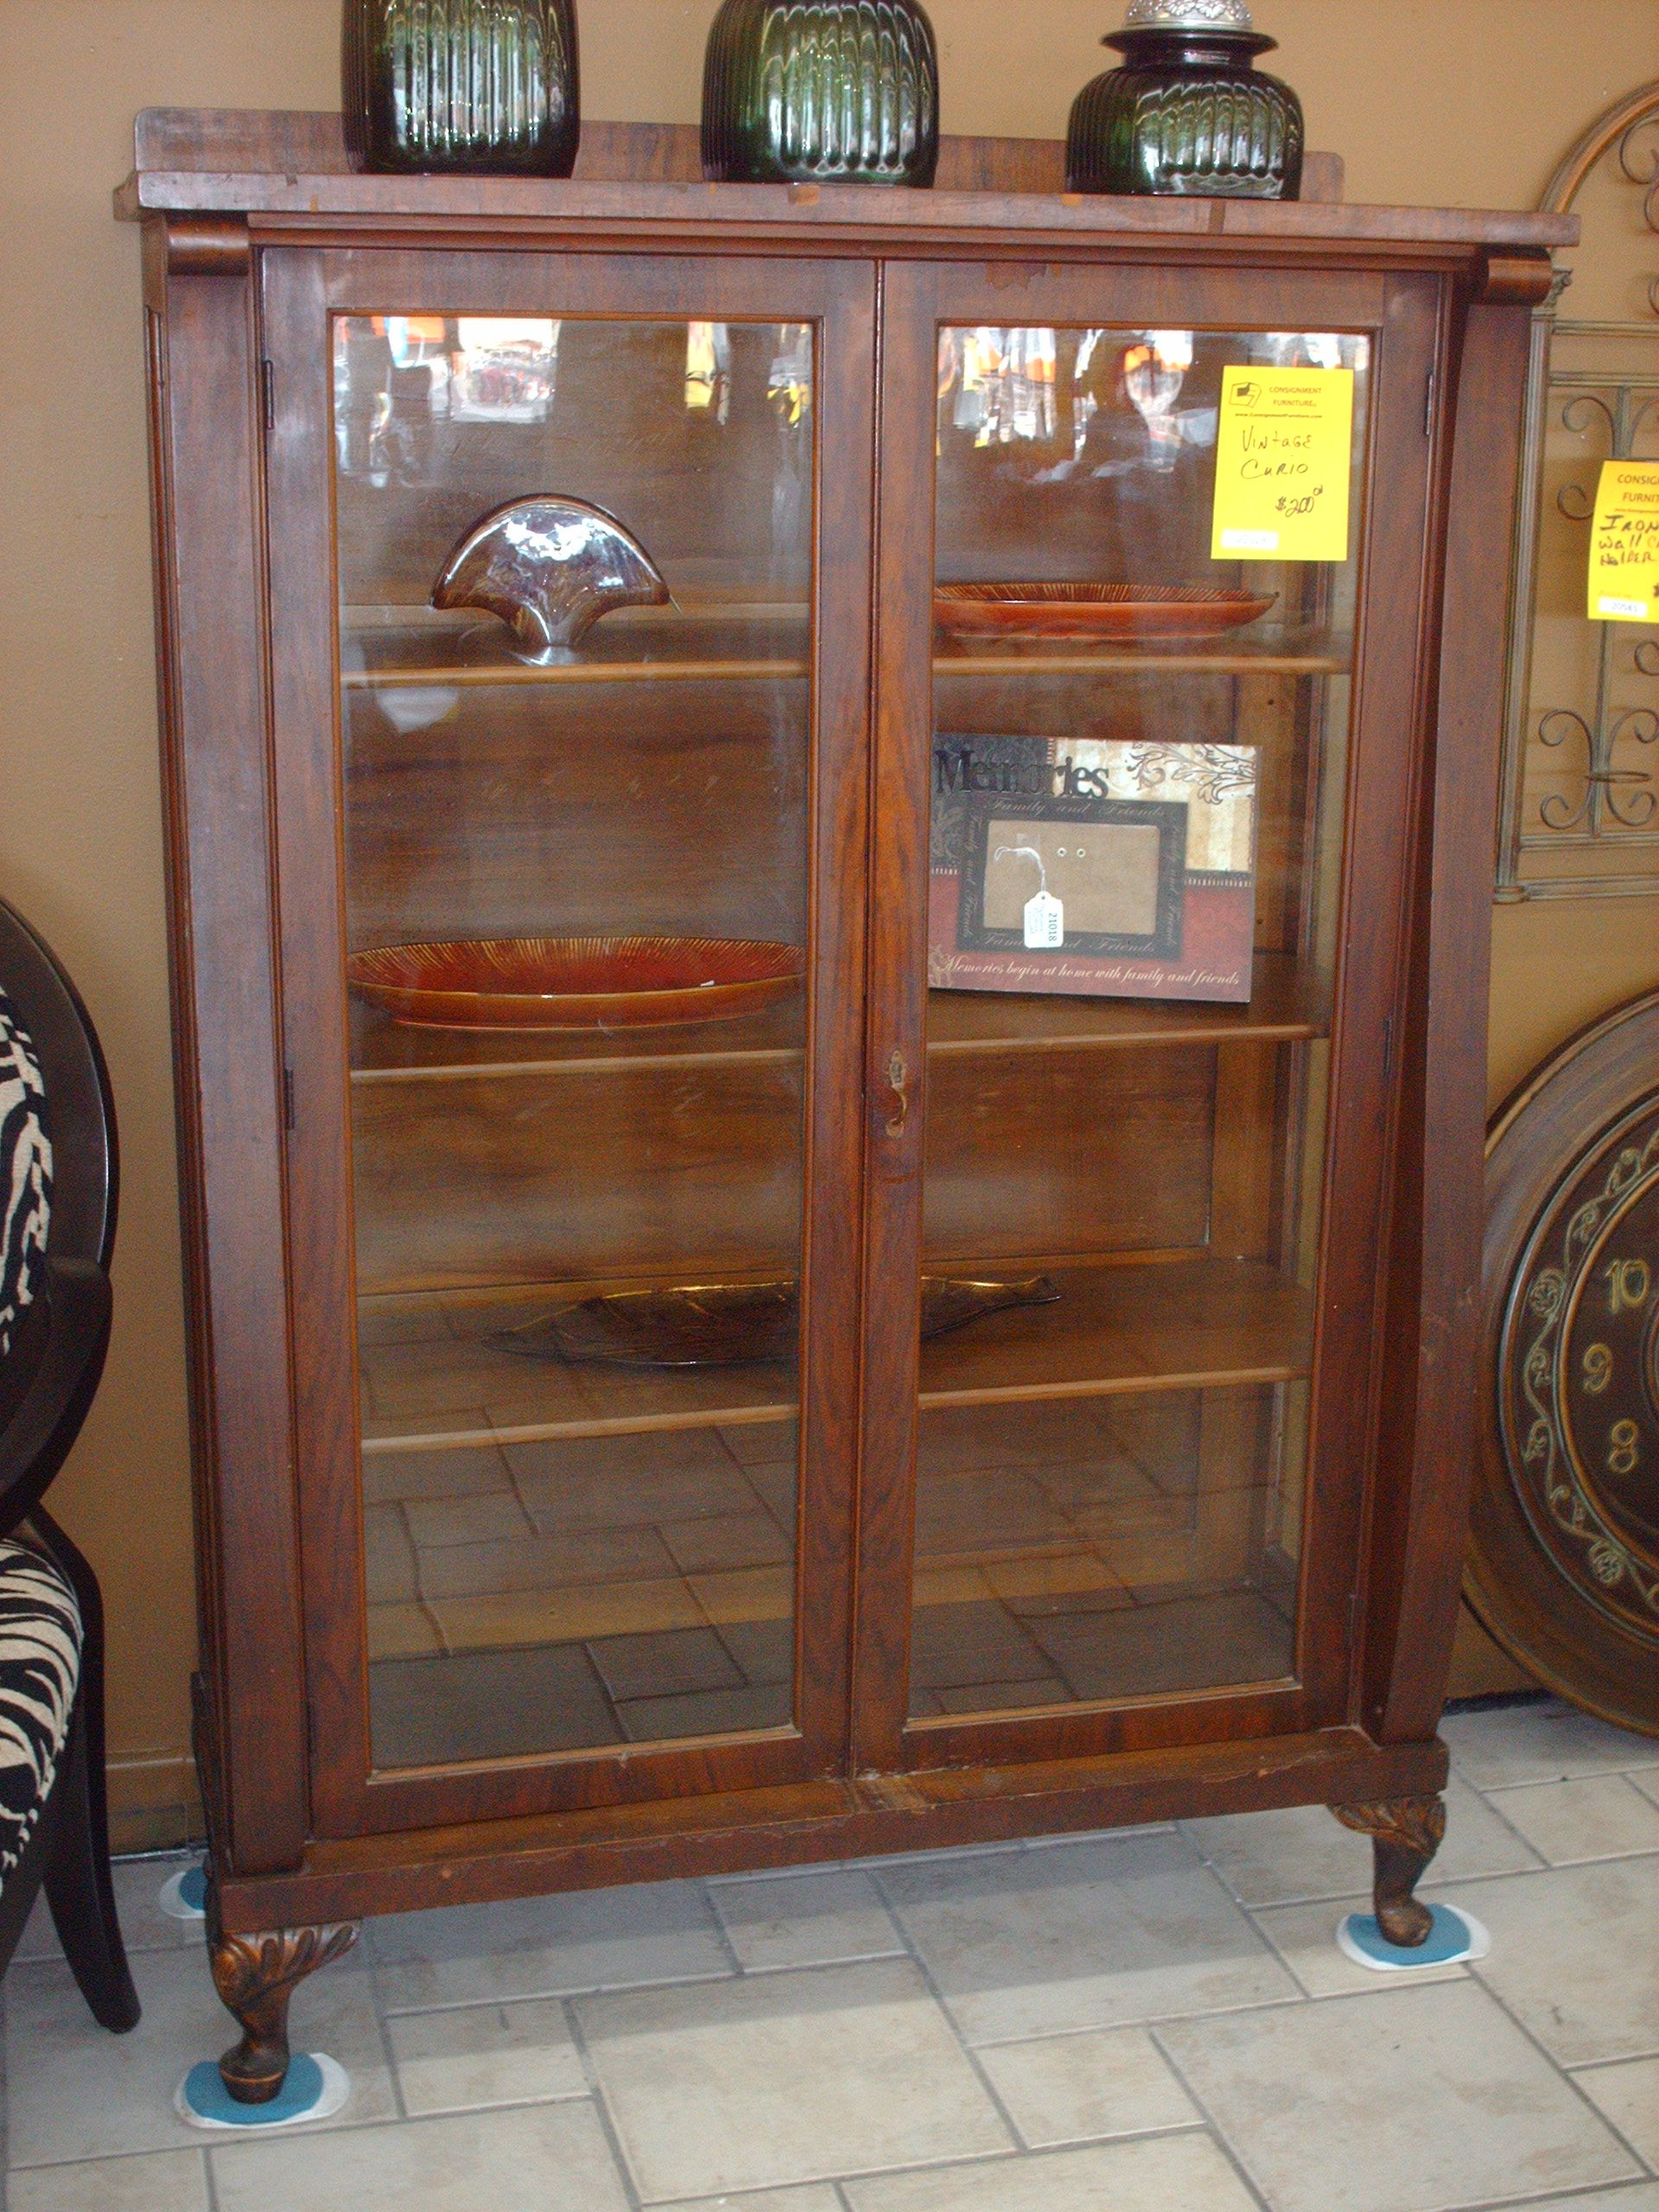 Charmant Consignment Furniture | Vintage Curio Cabinet SOLD   Consignment Furniture    Tulsa, OK